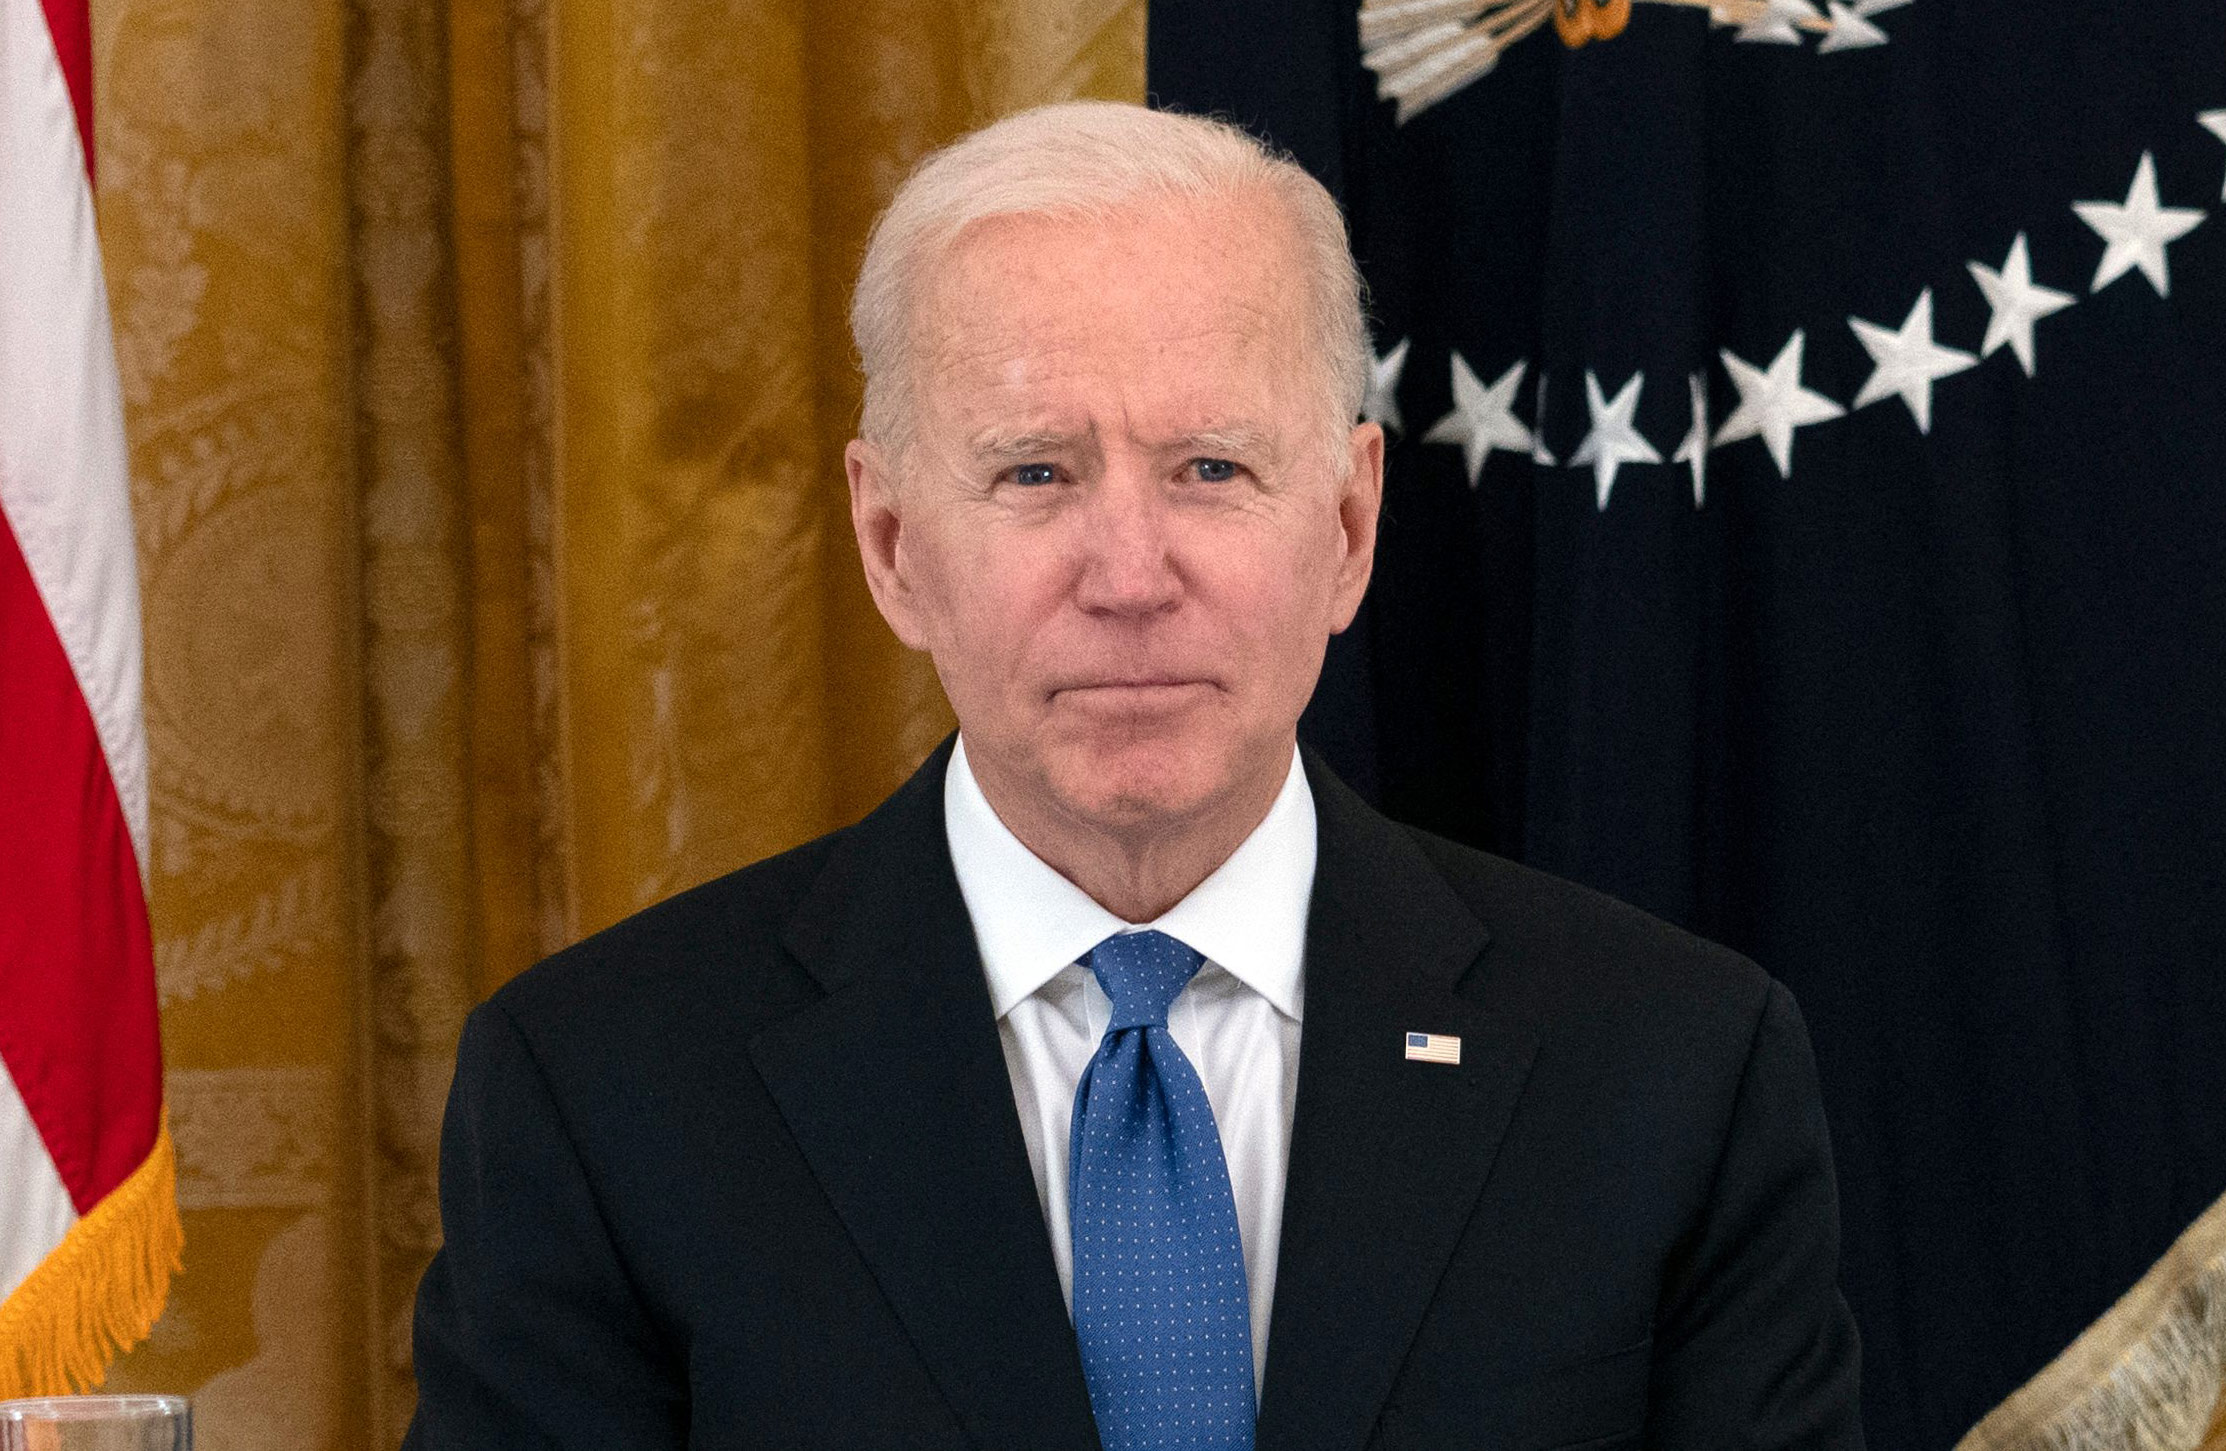 President Joe Biden attends a cabinet meeting in the East Room of the White House in Washington, DC, on April 1.